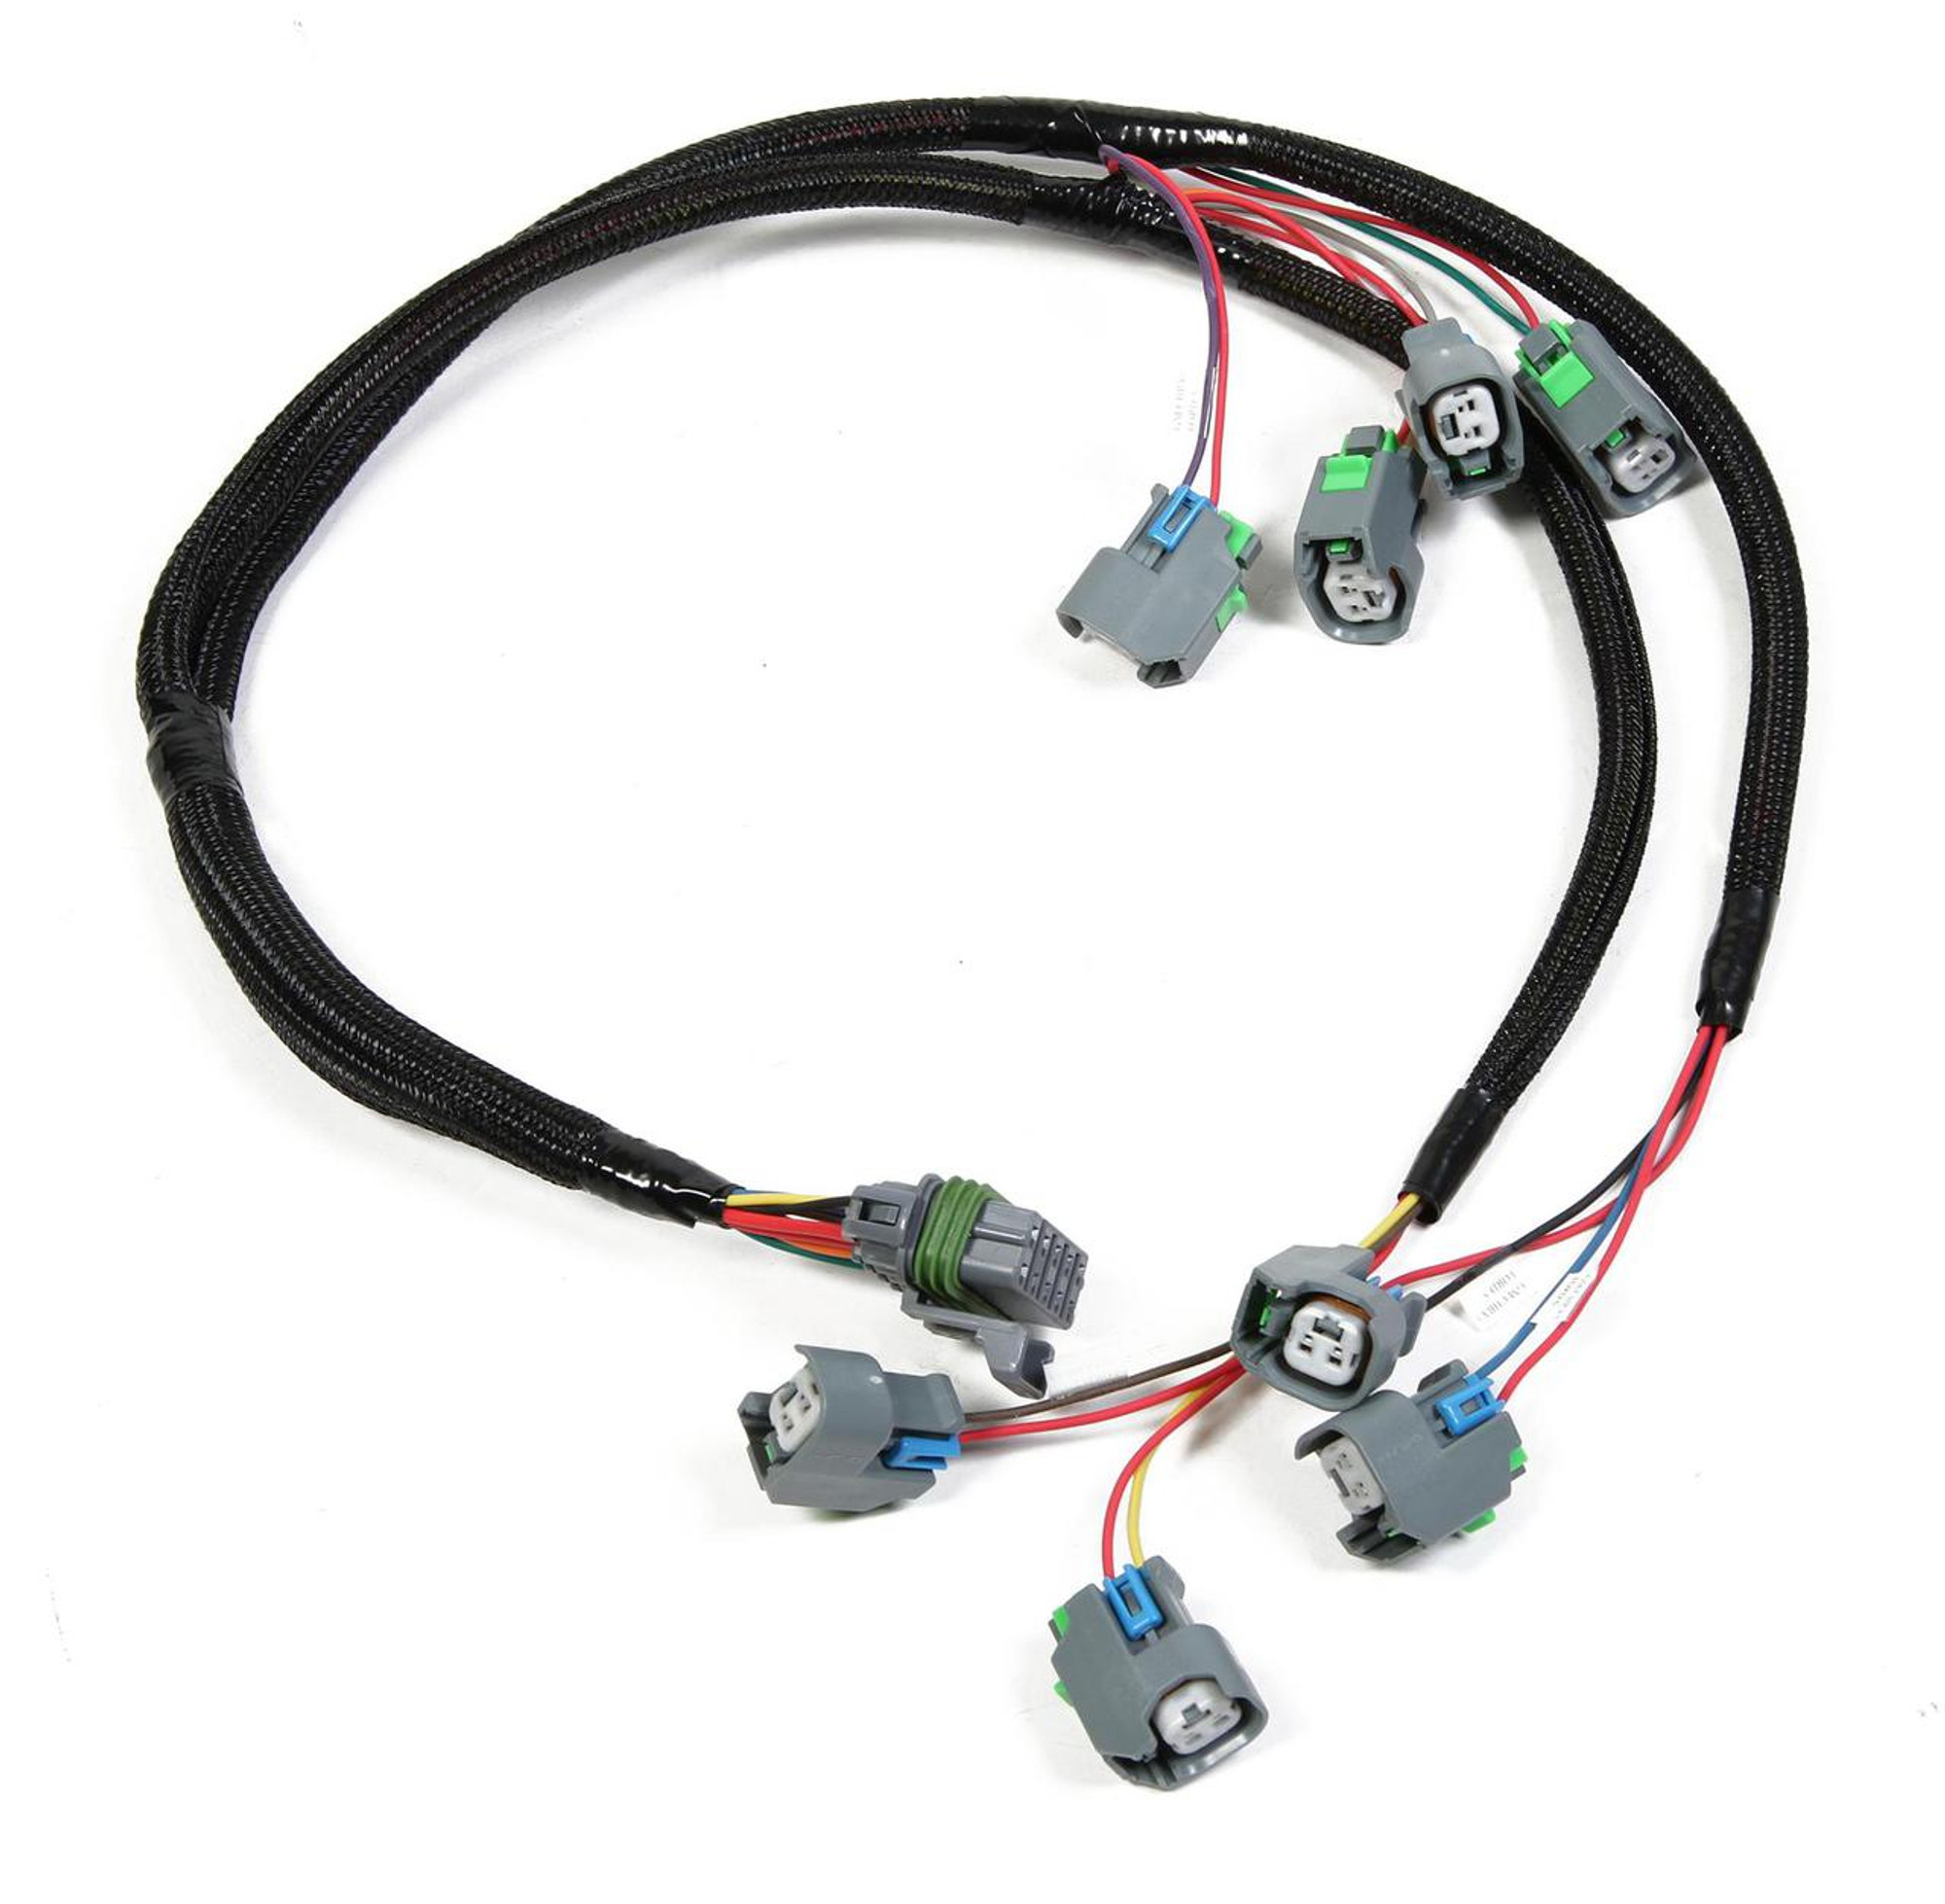 holley fuel injection wiring harness for lsx engines part hly 558 fuel injector wiring harness ford fuel injector wiring harness [ 1280 x 1253 Pixel ]